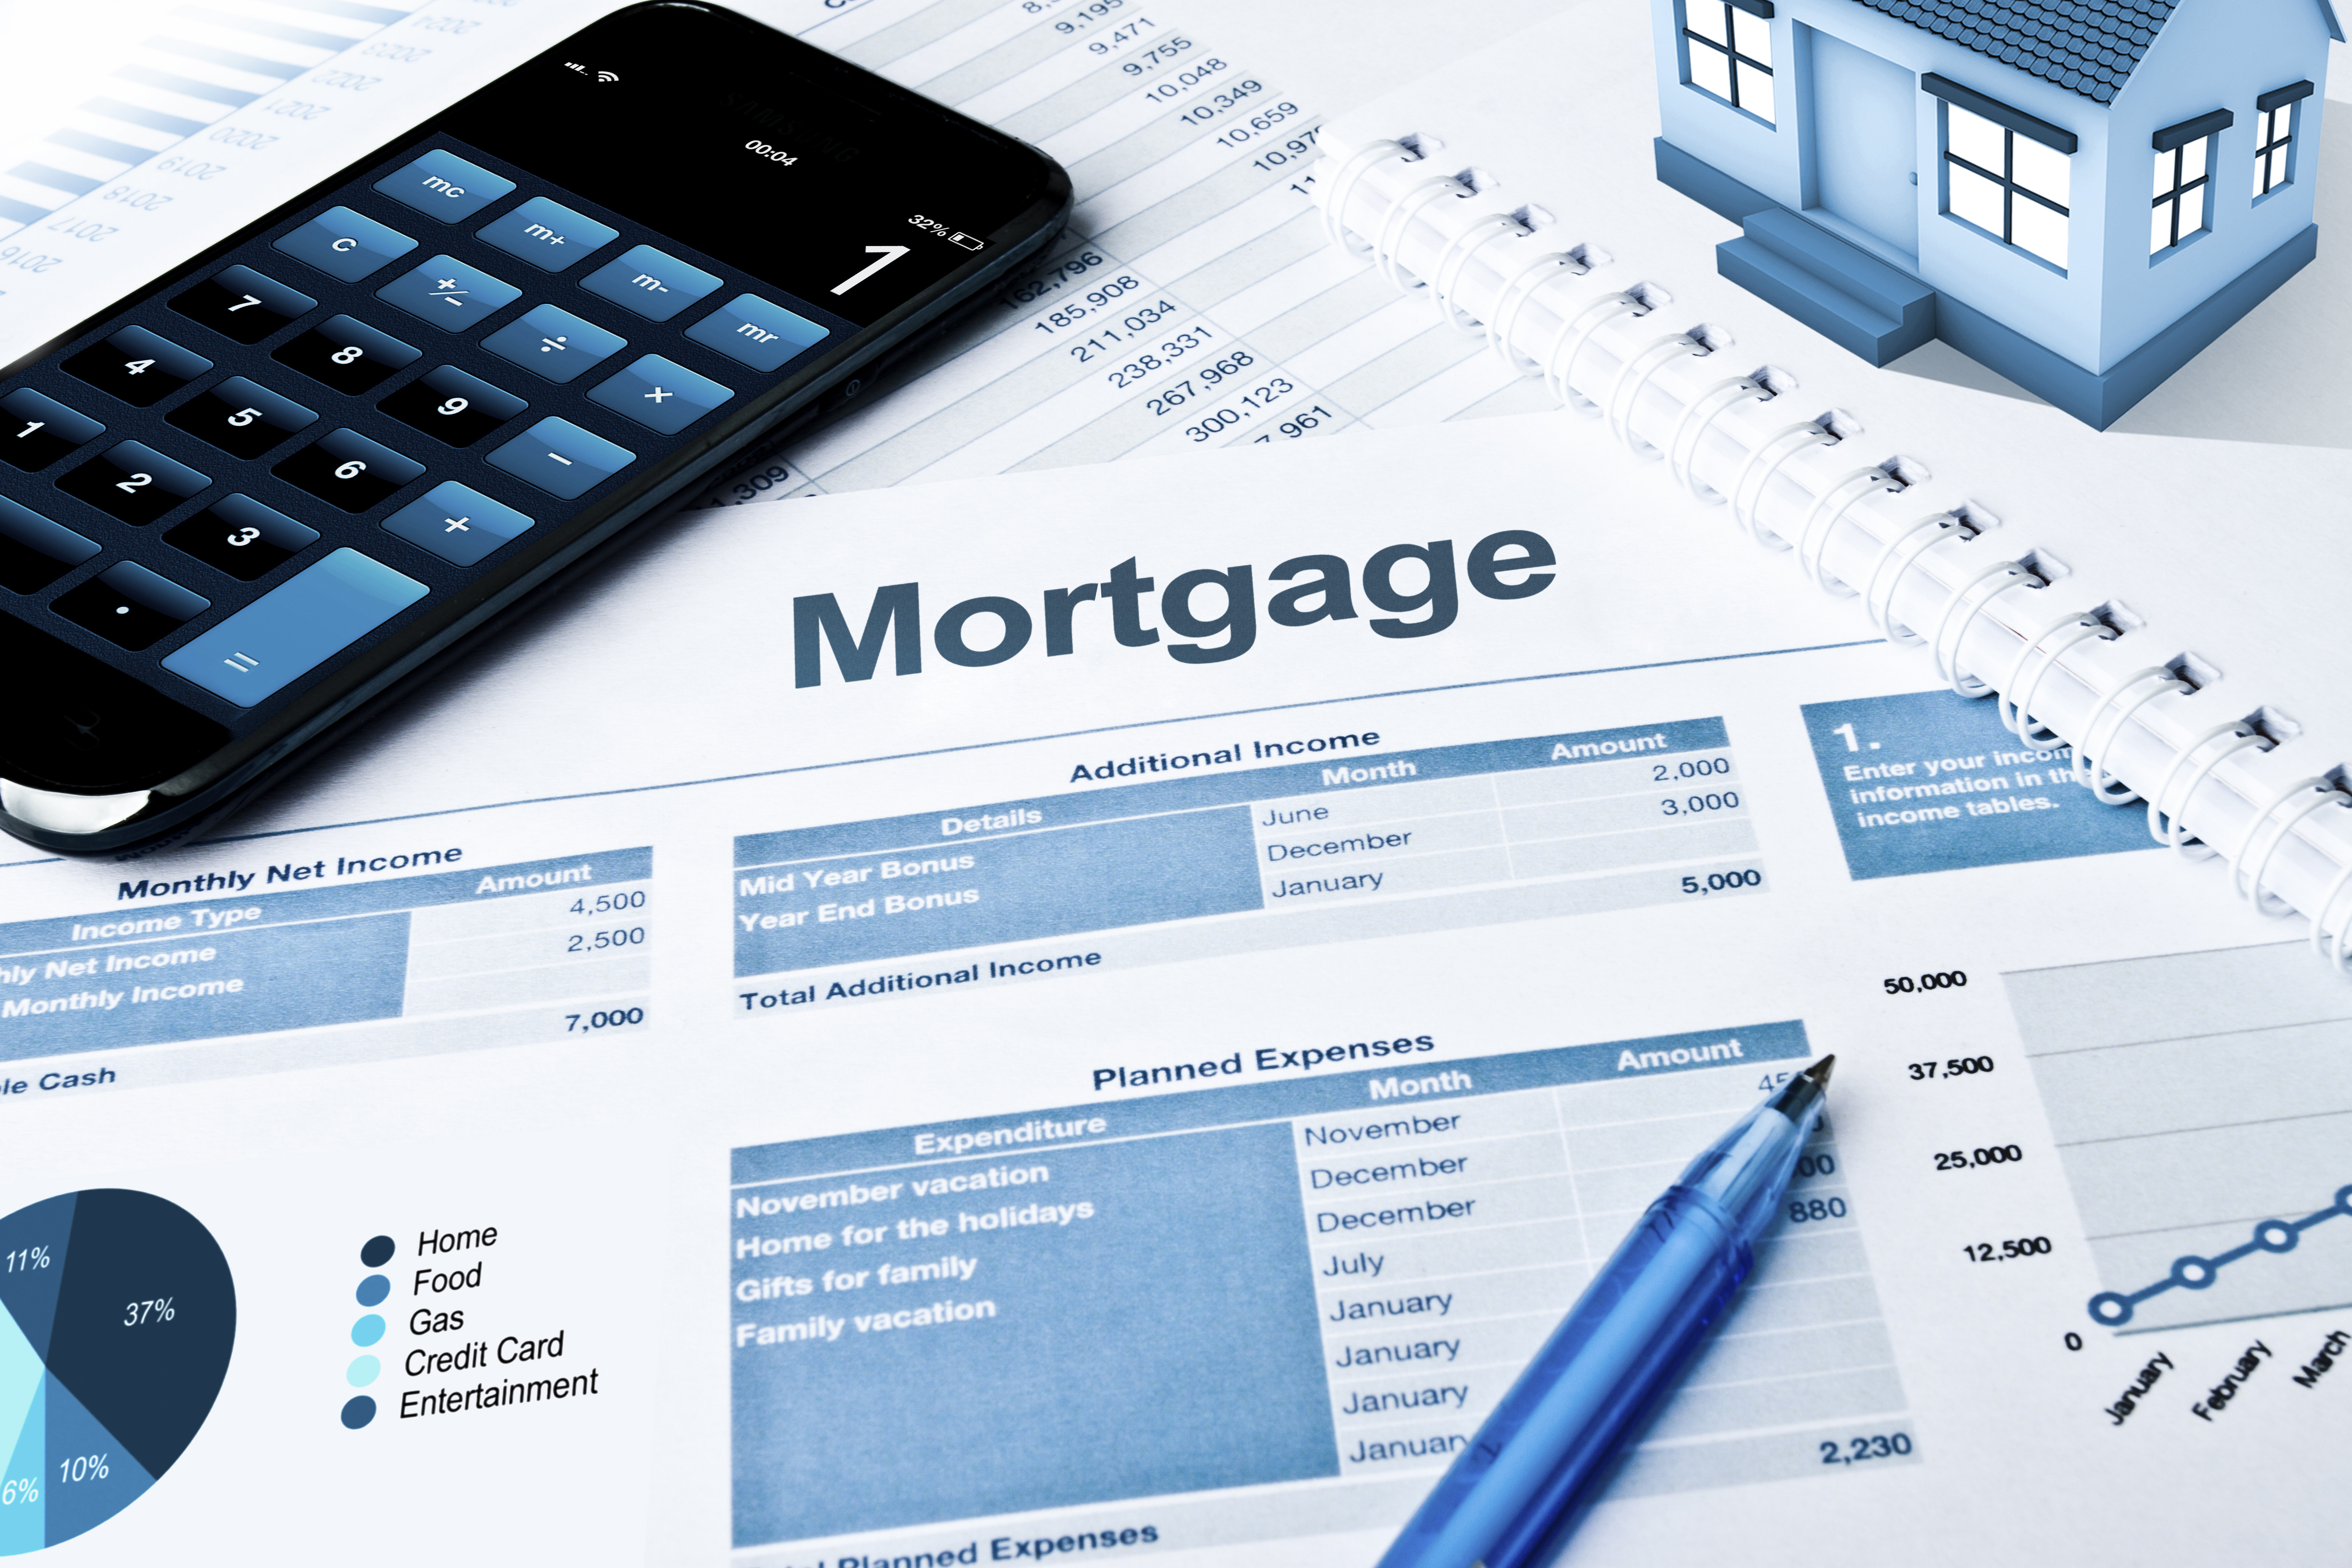 how much mortgage can i afford? | zillow